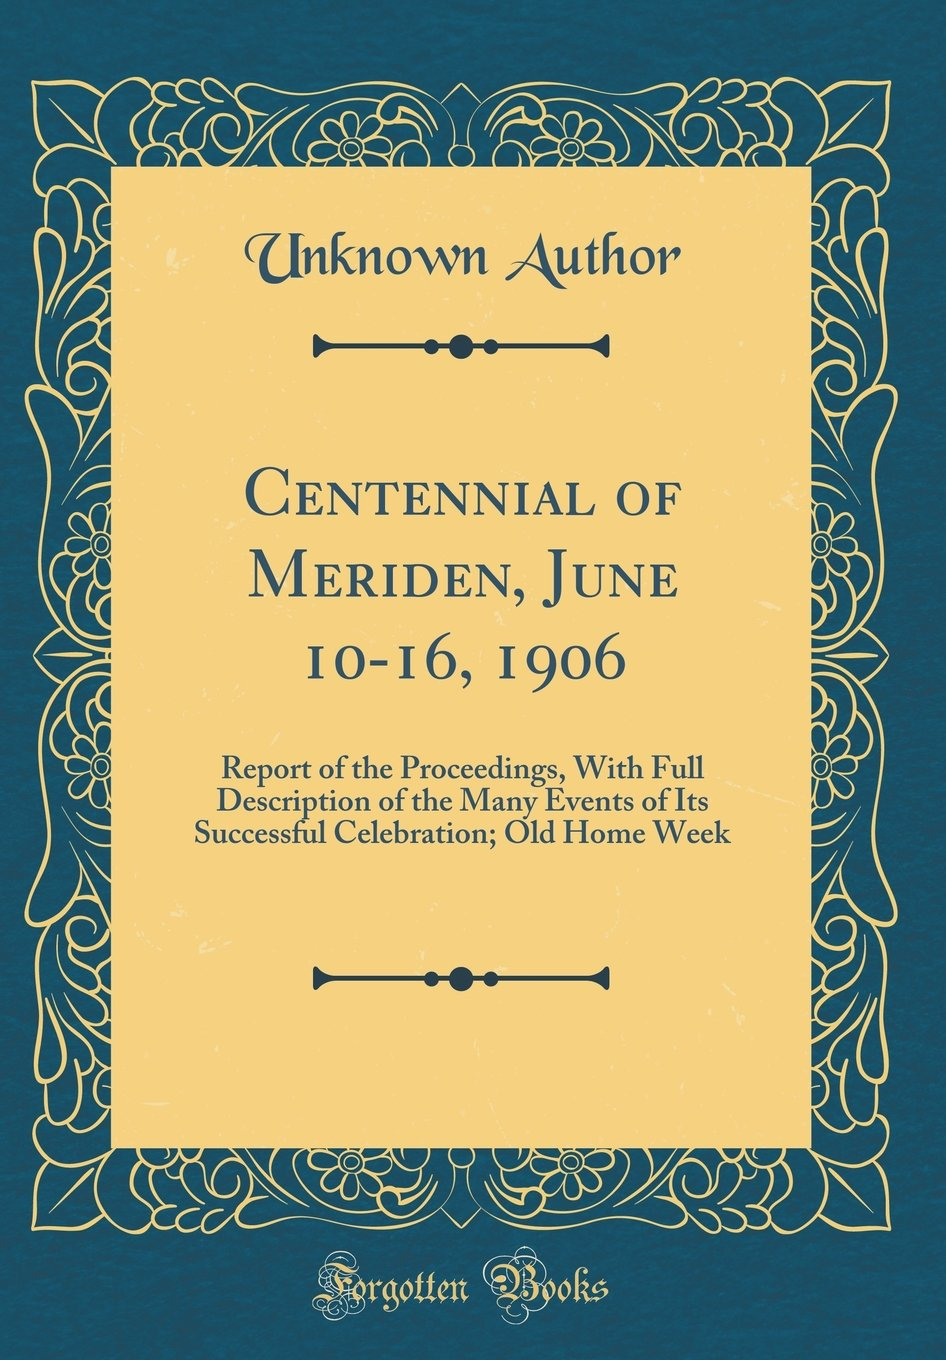 Centennial of Meriden, June 10-16, 1906: Report of the Proceedings, With Full Description of the Many Events of Its Successful Celebration; Old Home Week (Classic Reprint) ebook